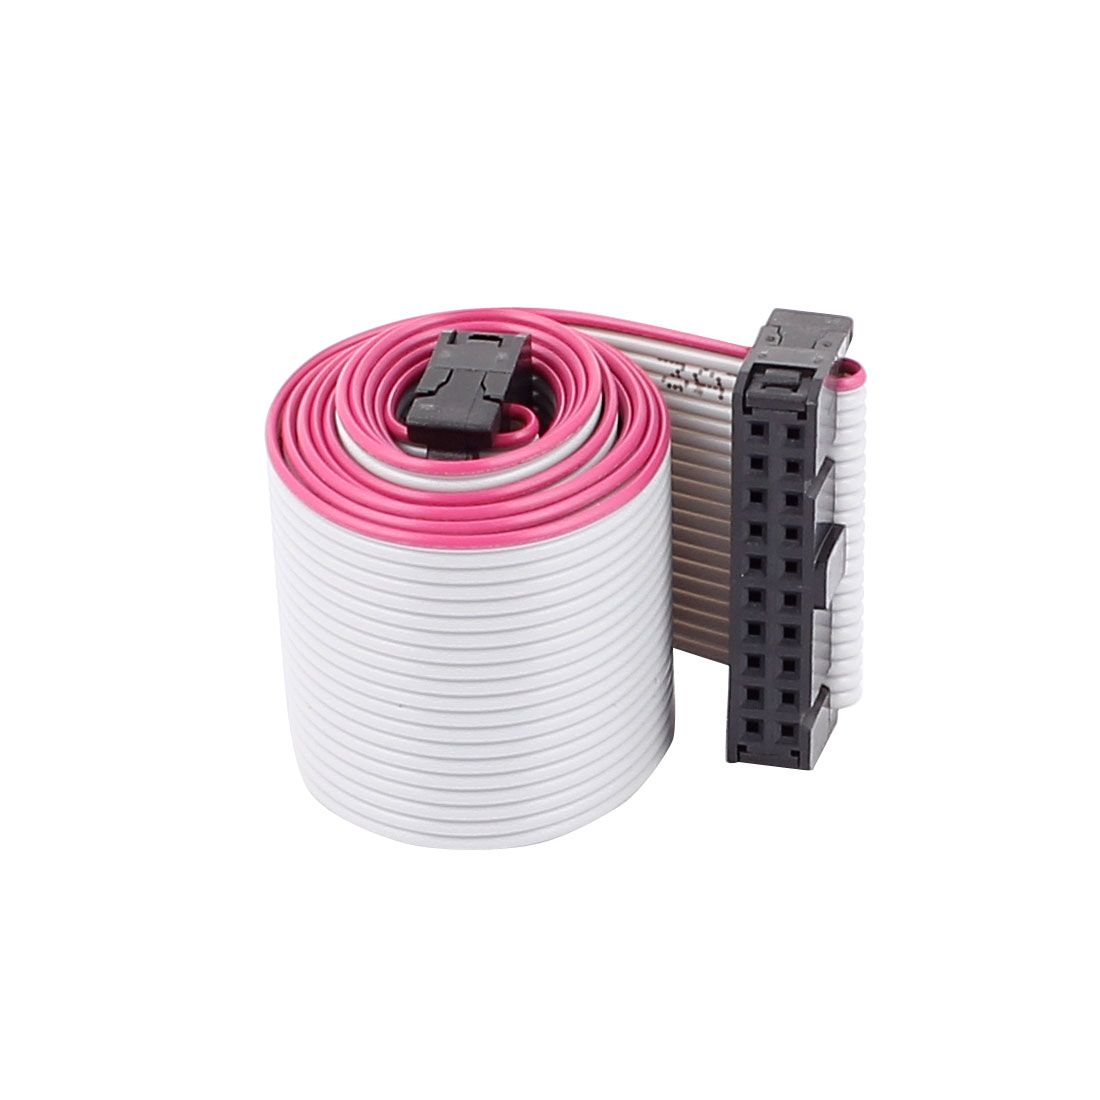 2.54mm Pitch 20 Pins 20 Wires F/F IDC Connector Flat Ribbon Cable 66cm Long